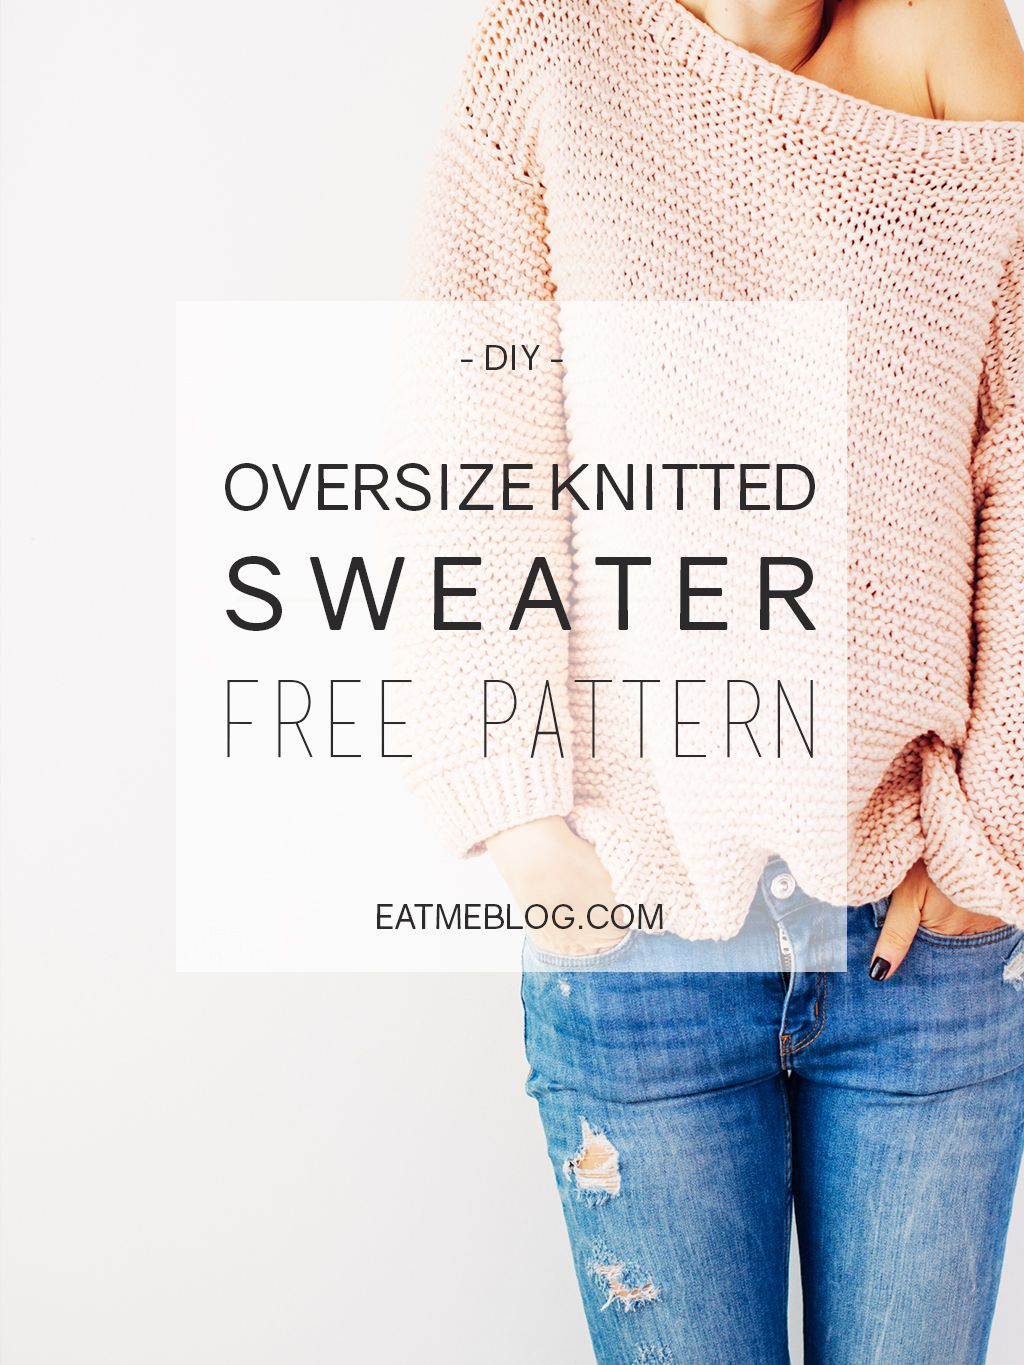 Oversized knitted sweater - FREE PATTERN. Easy step by step guide ...